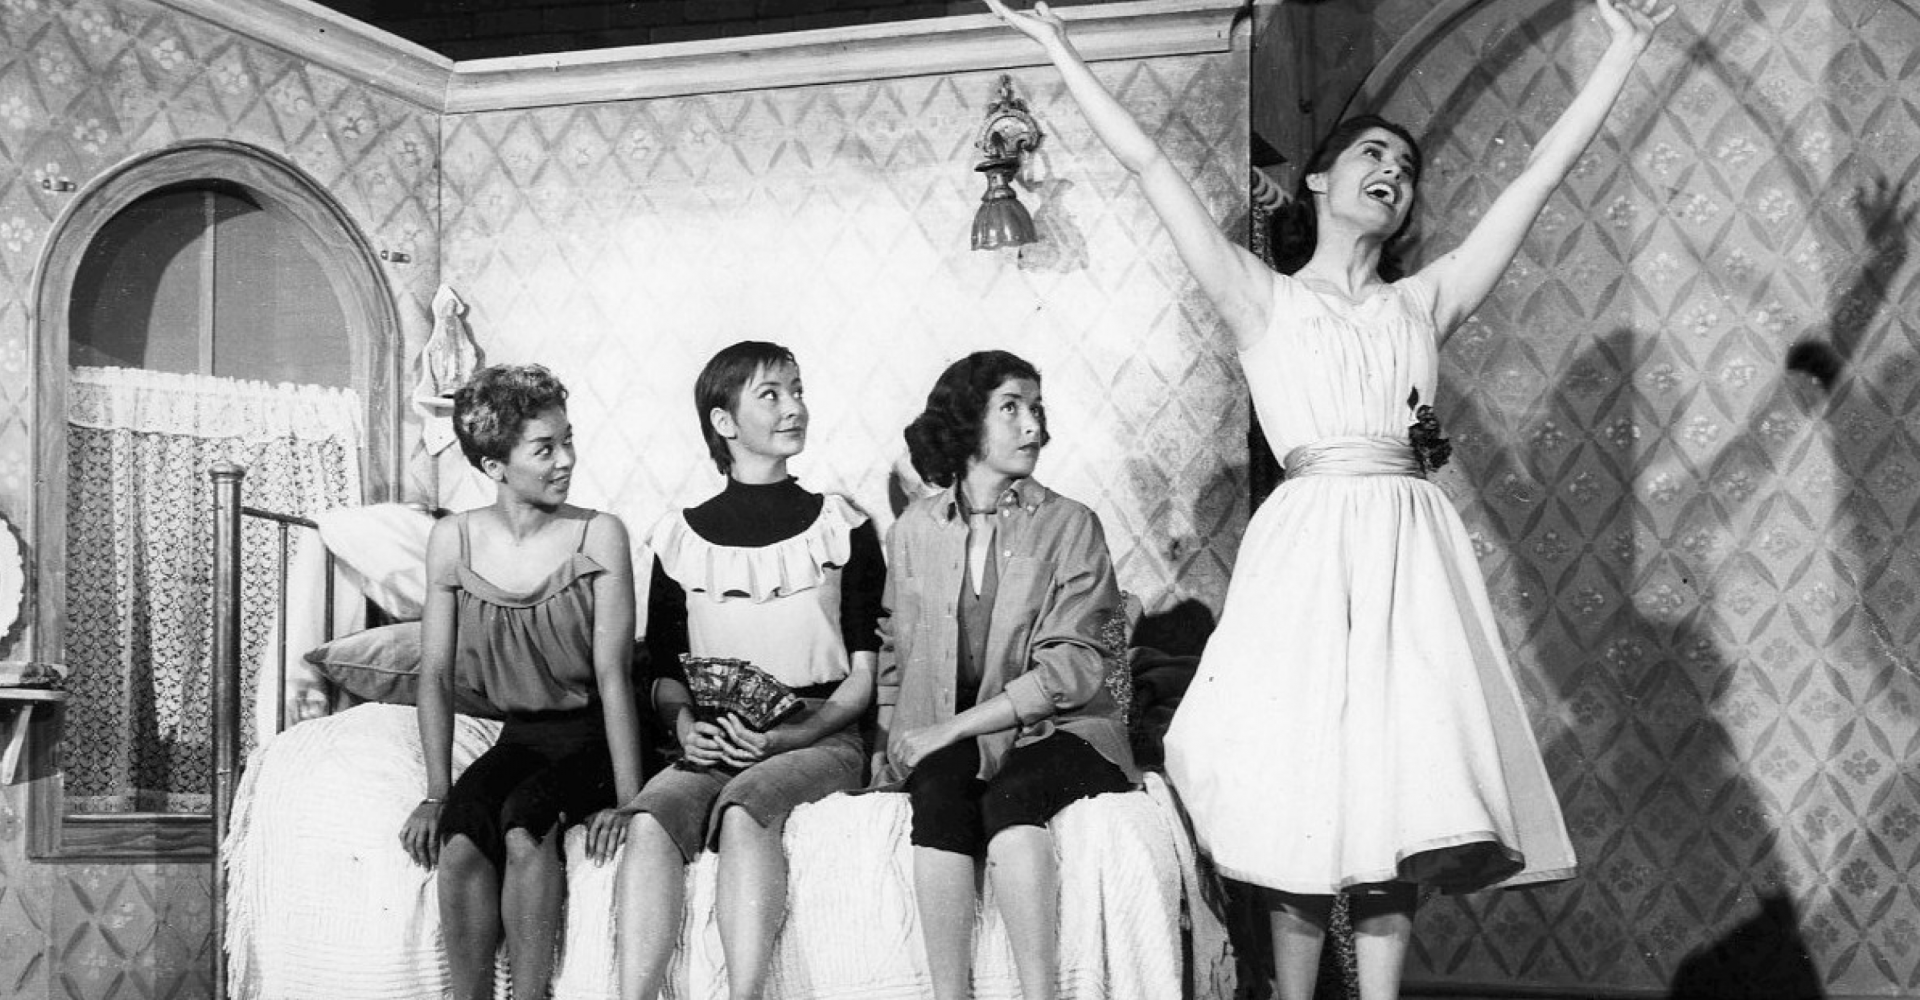 A scene from West Side Story, Maria smiles and opens her arms wide, while three women sit on a bed and look at her.